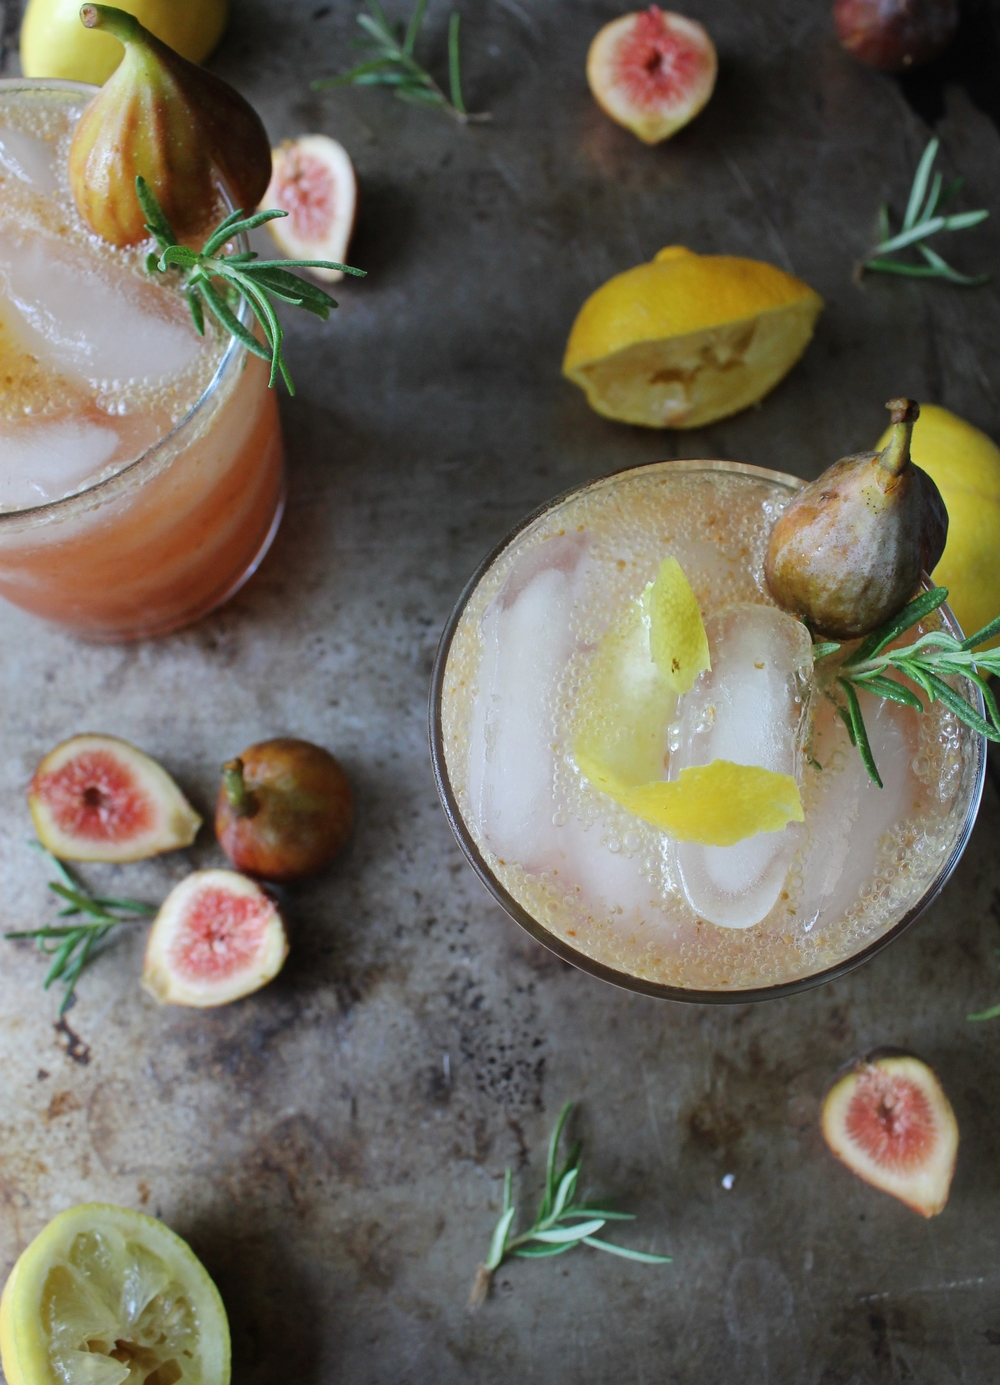 http://mydiaryofus.com/blog/2014/7/31/sexy-fig-and-lemon-fizz